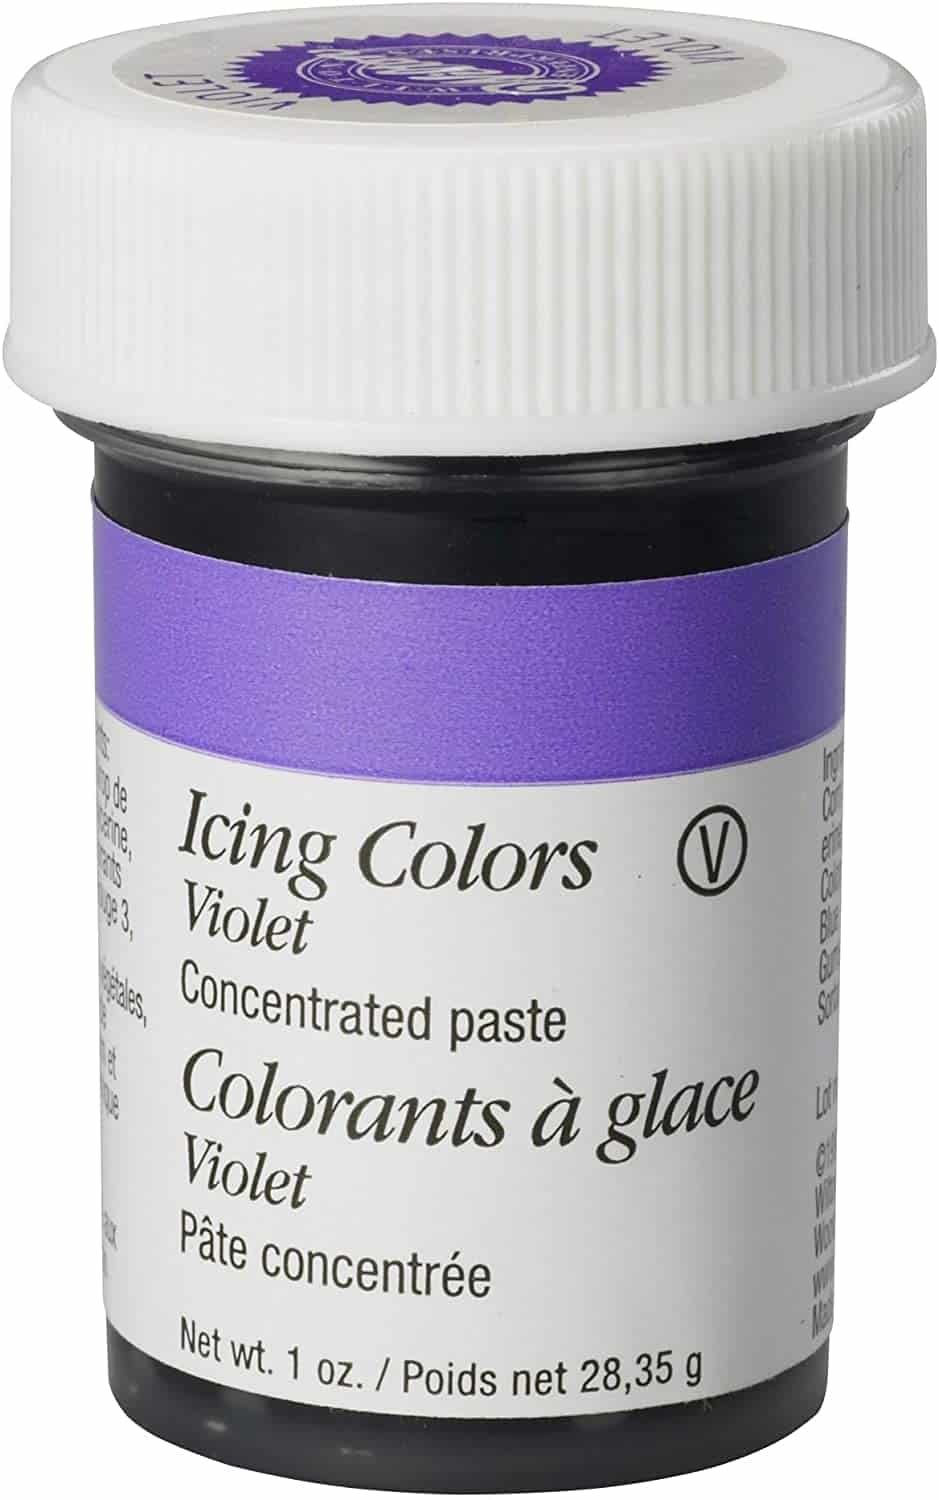 Wilton Violet Gel Icing Colour, 28.3g (1oz) jar